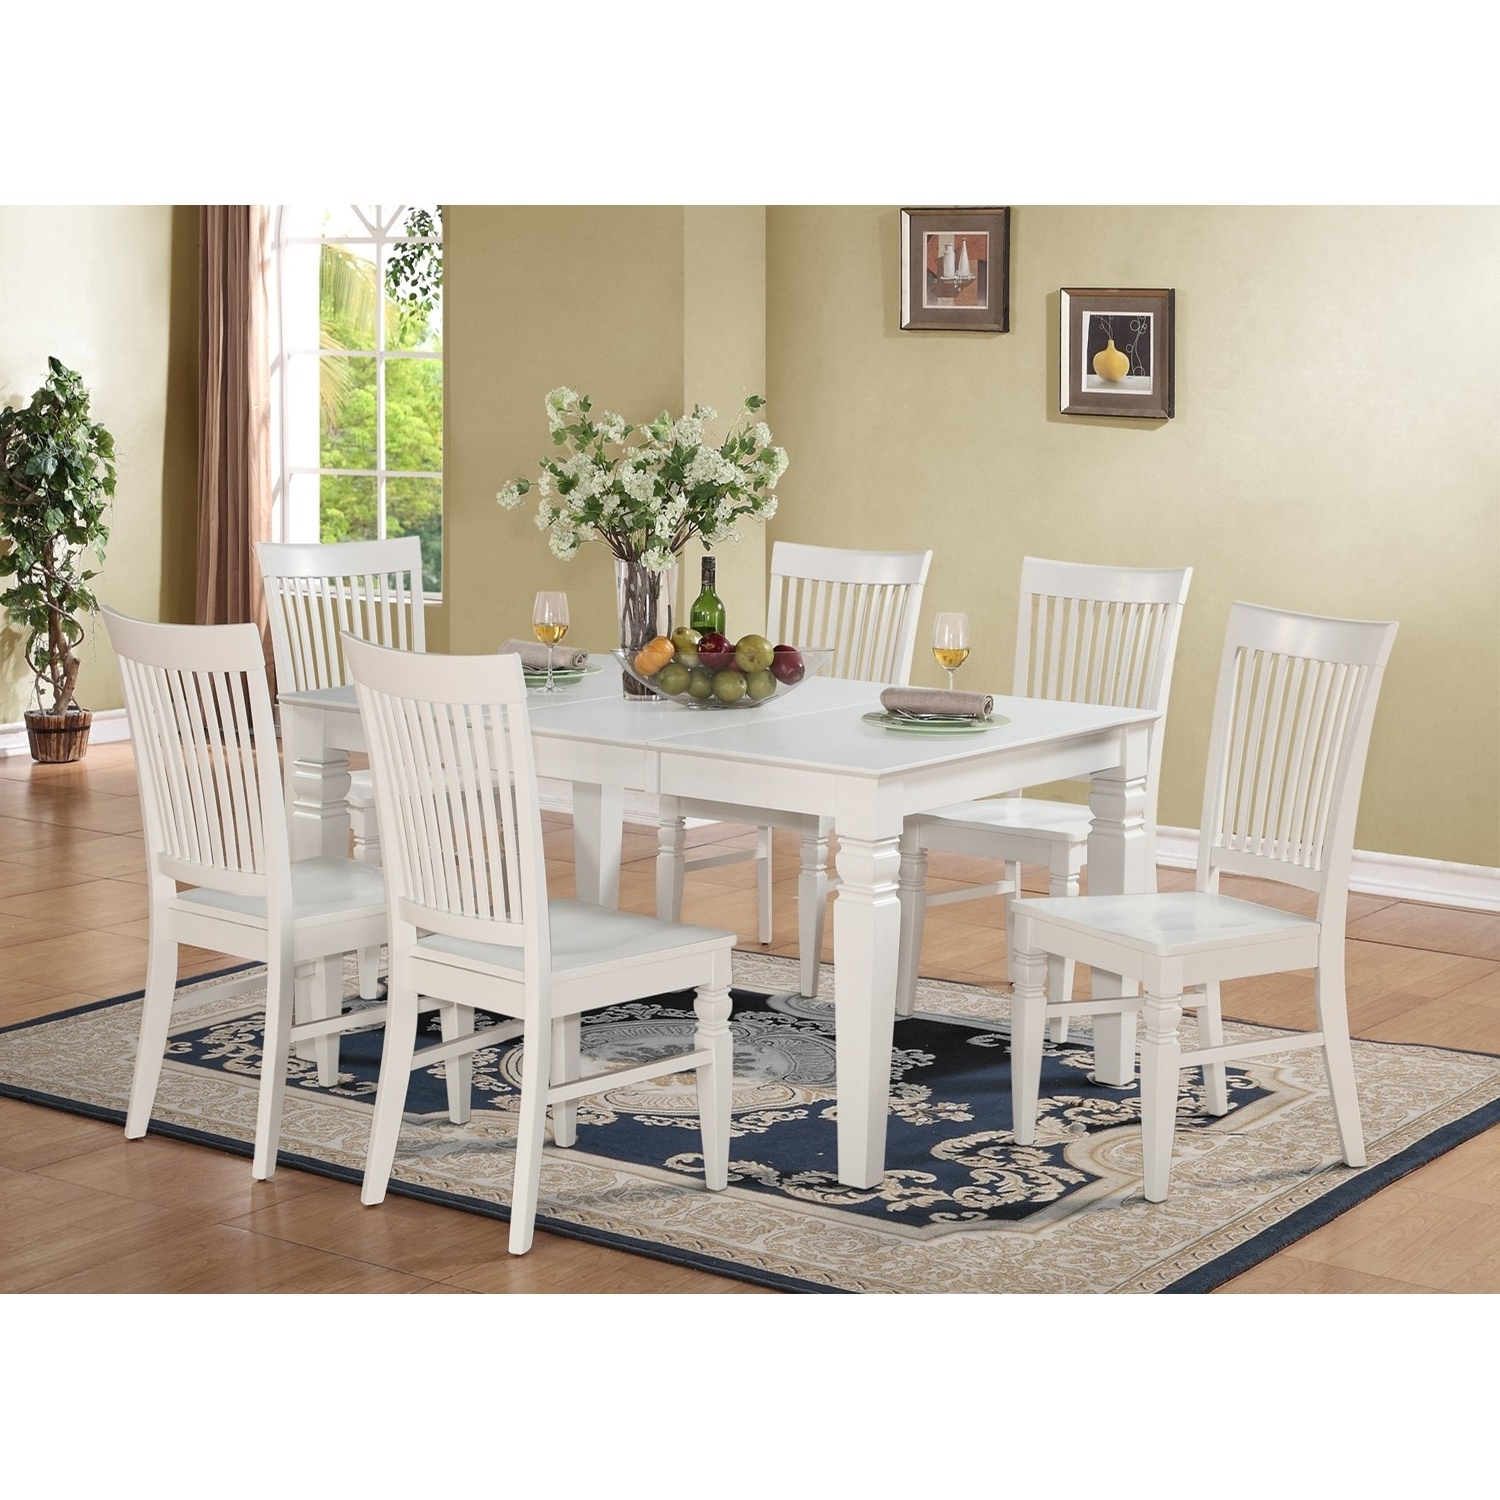 East West Furniture West7 Whi W – Weston 7 Piece White Dining Set Within Fashionable White Dining Sets (View 14 of 25)